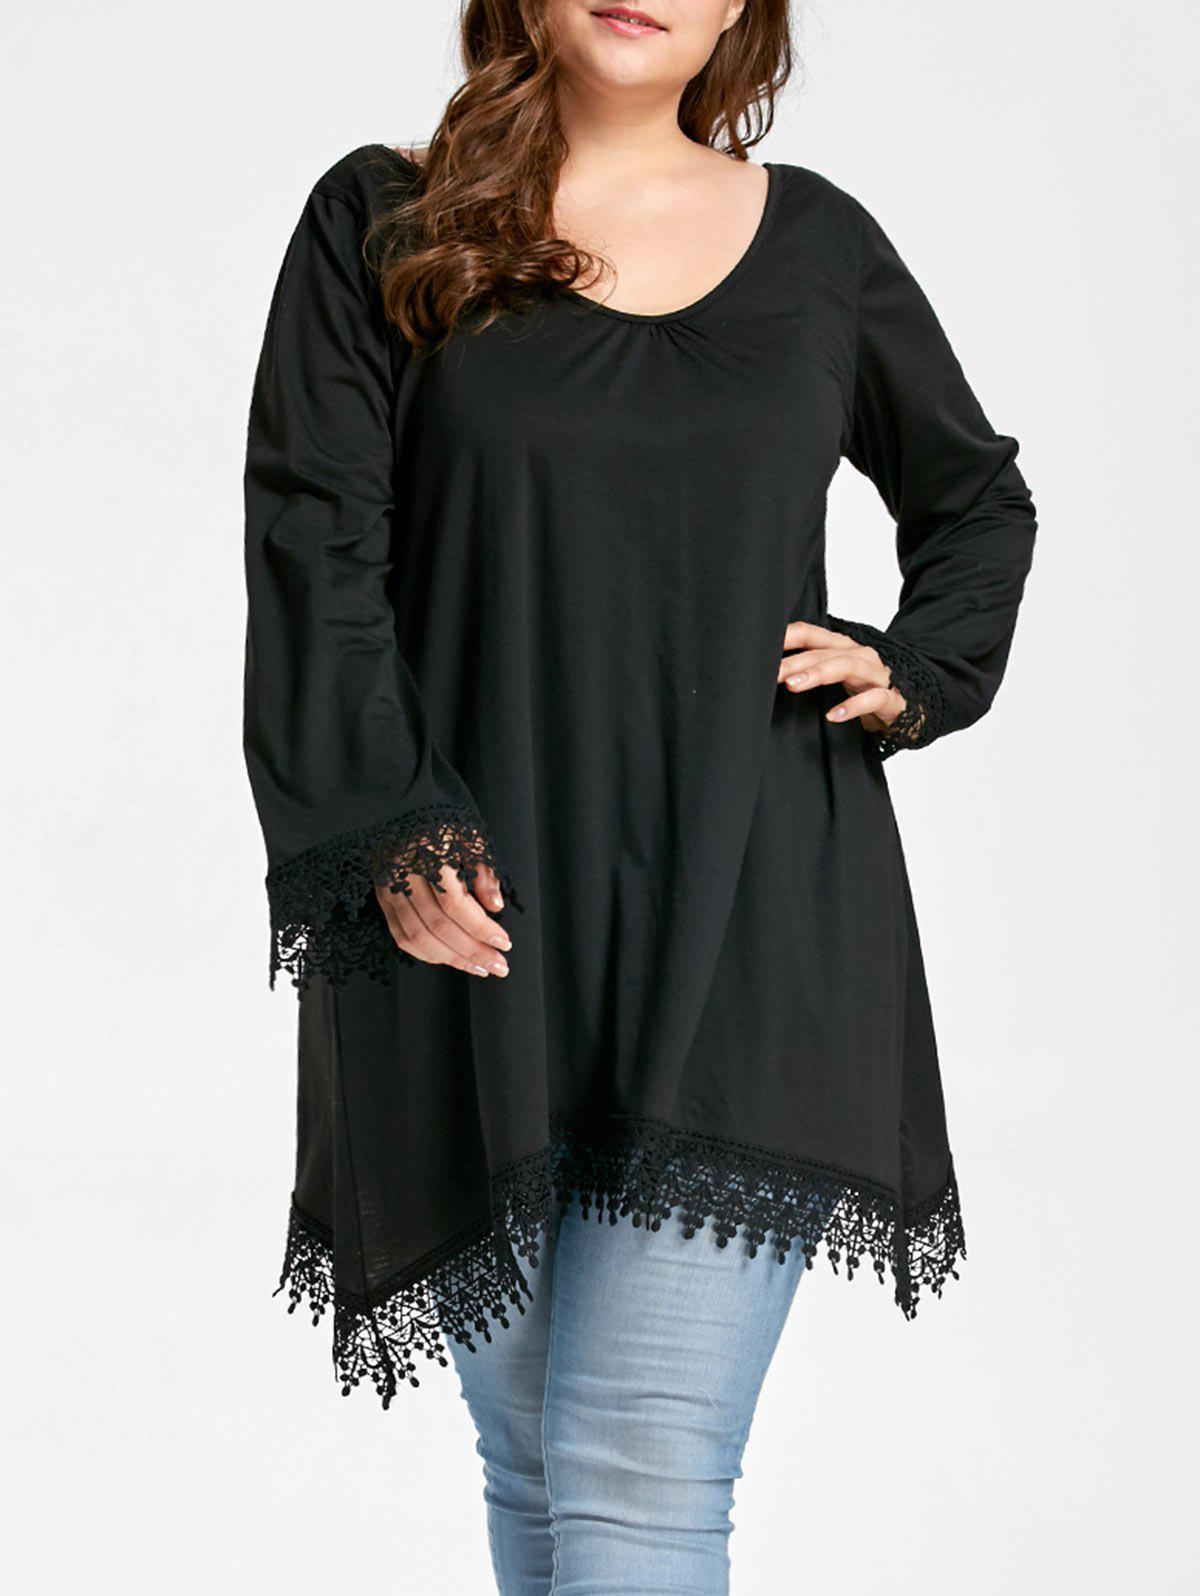 Plus Size Asymmetrical Lace Panel Scoop Neck TeeWOMEN<br><br>Size: XL; Color: BLACK; Material: Cotton,Polyester; Shirt Length: Long; Sleeve Length: Full; Collar: Scoop Neck; Style: Fashion; Season: Fall; Embellishment: Lace; Pattern Type: Solid; Weight: 0.3500kg; Package Contents: 1 x T-shirt;